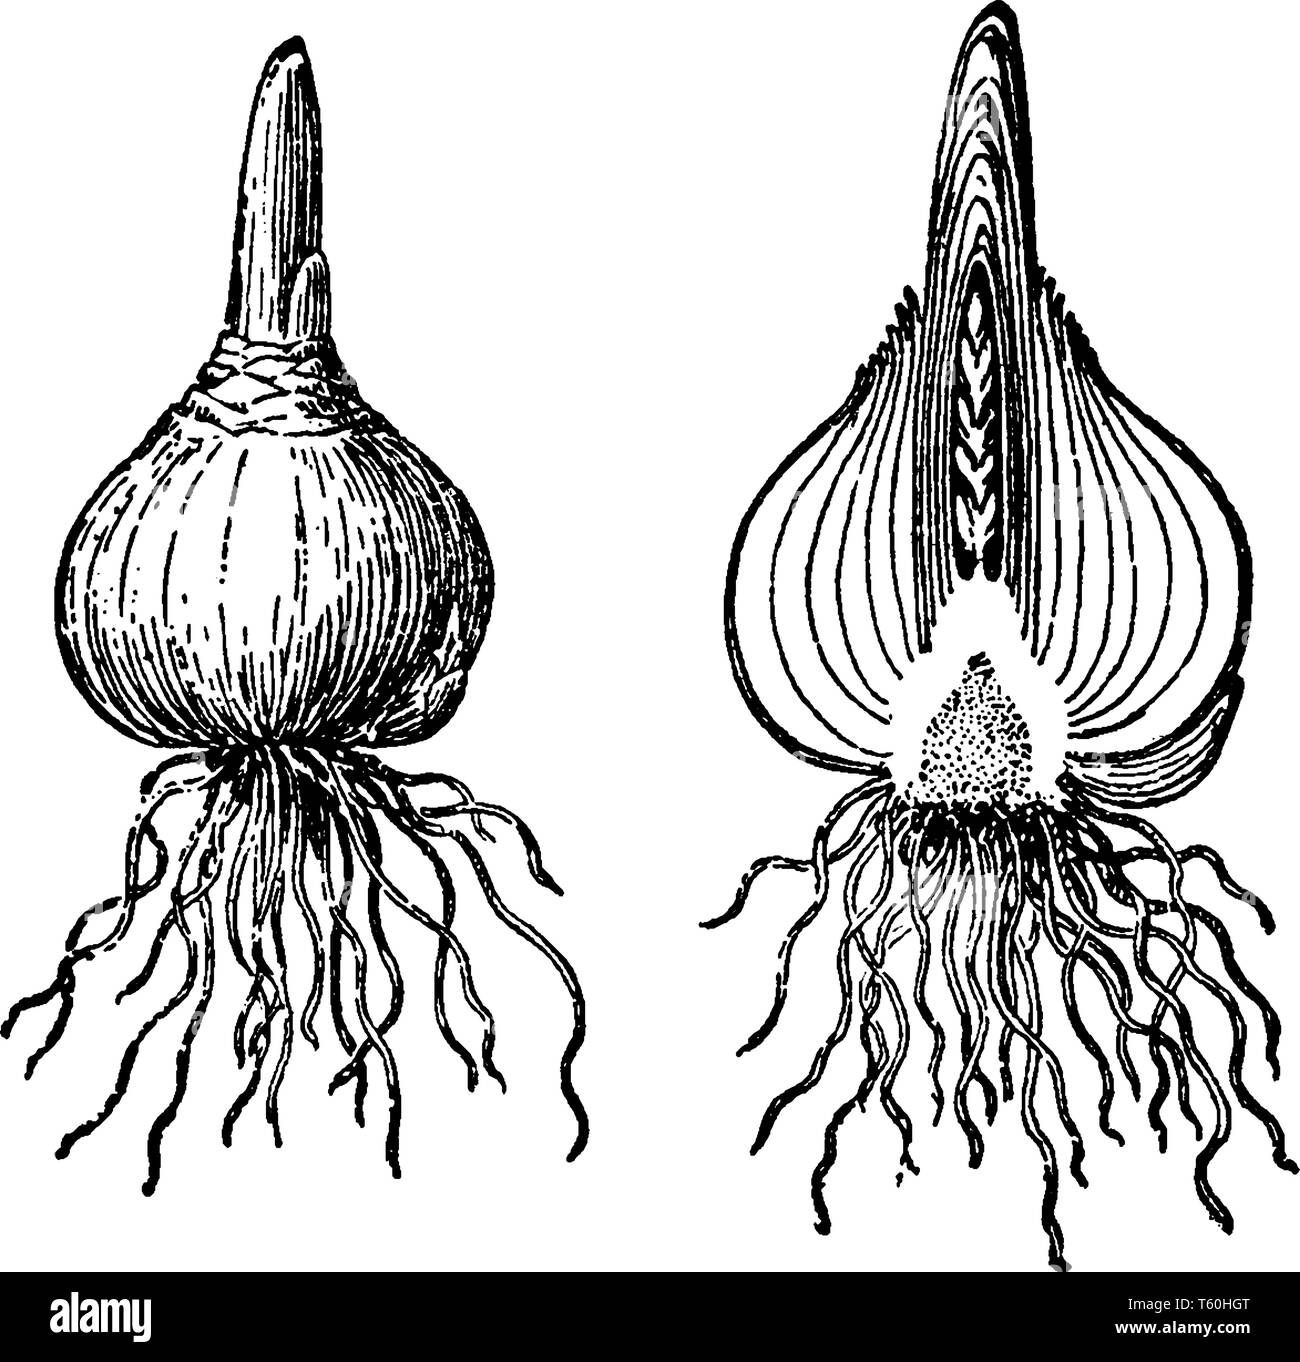 The image shows a Bulb of hyacinth. Hyacinth bulbs are poisonous; they contain oxalic acid. Handling hyacinth bulbs can cause mild skin irritation, vi Stock Vector